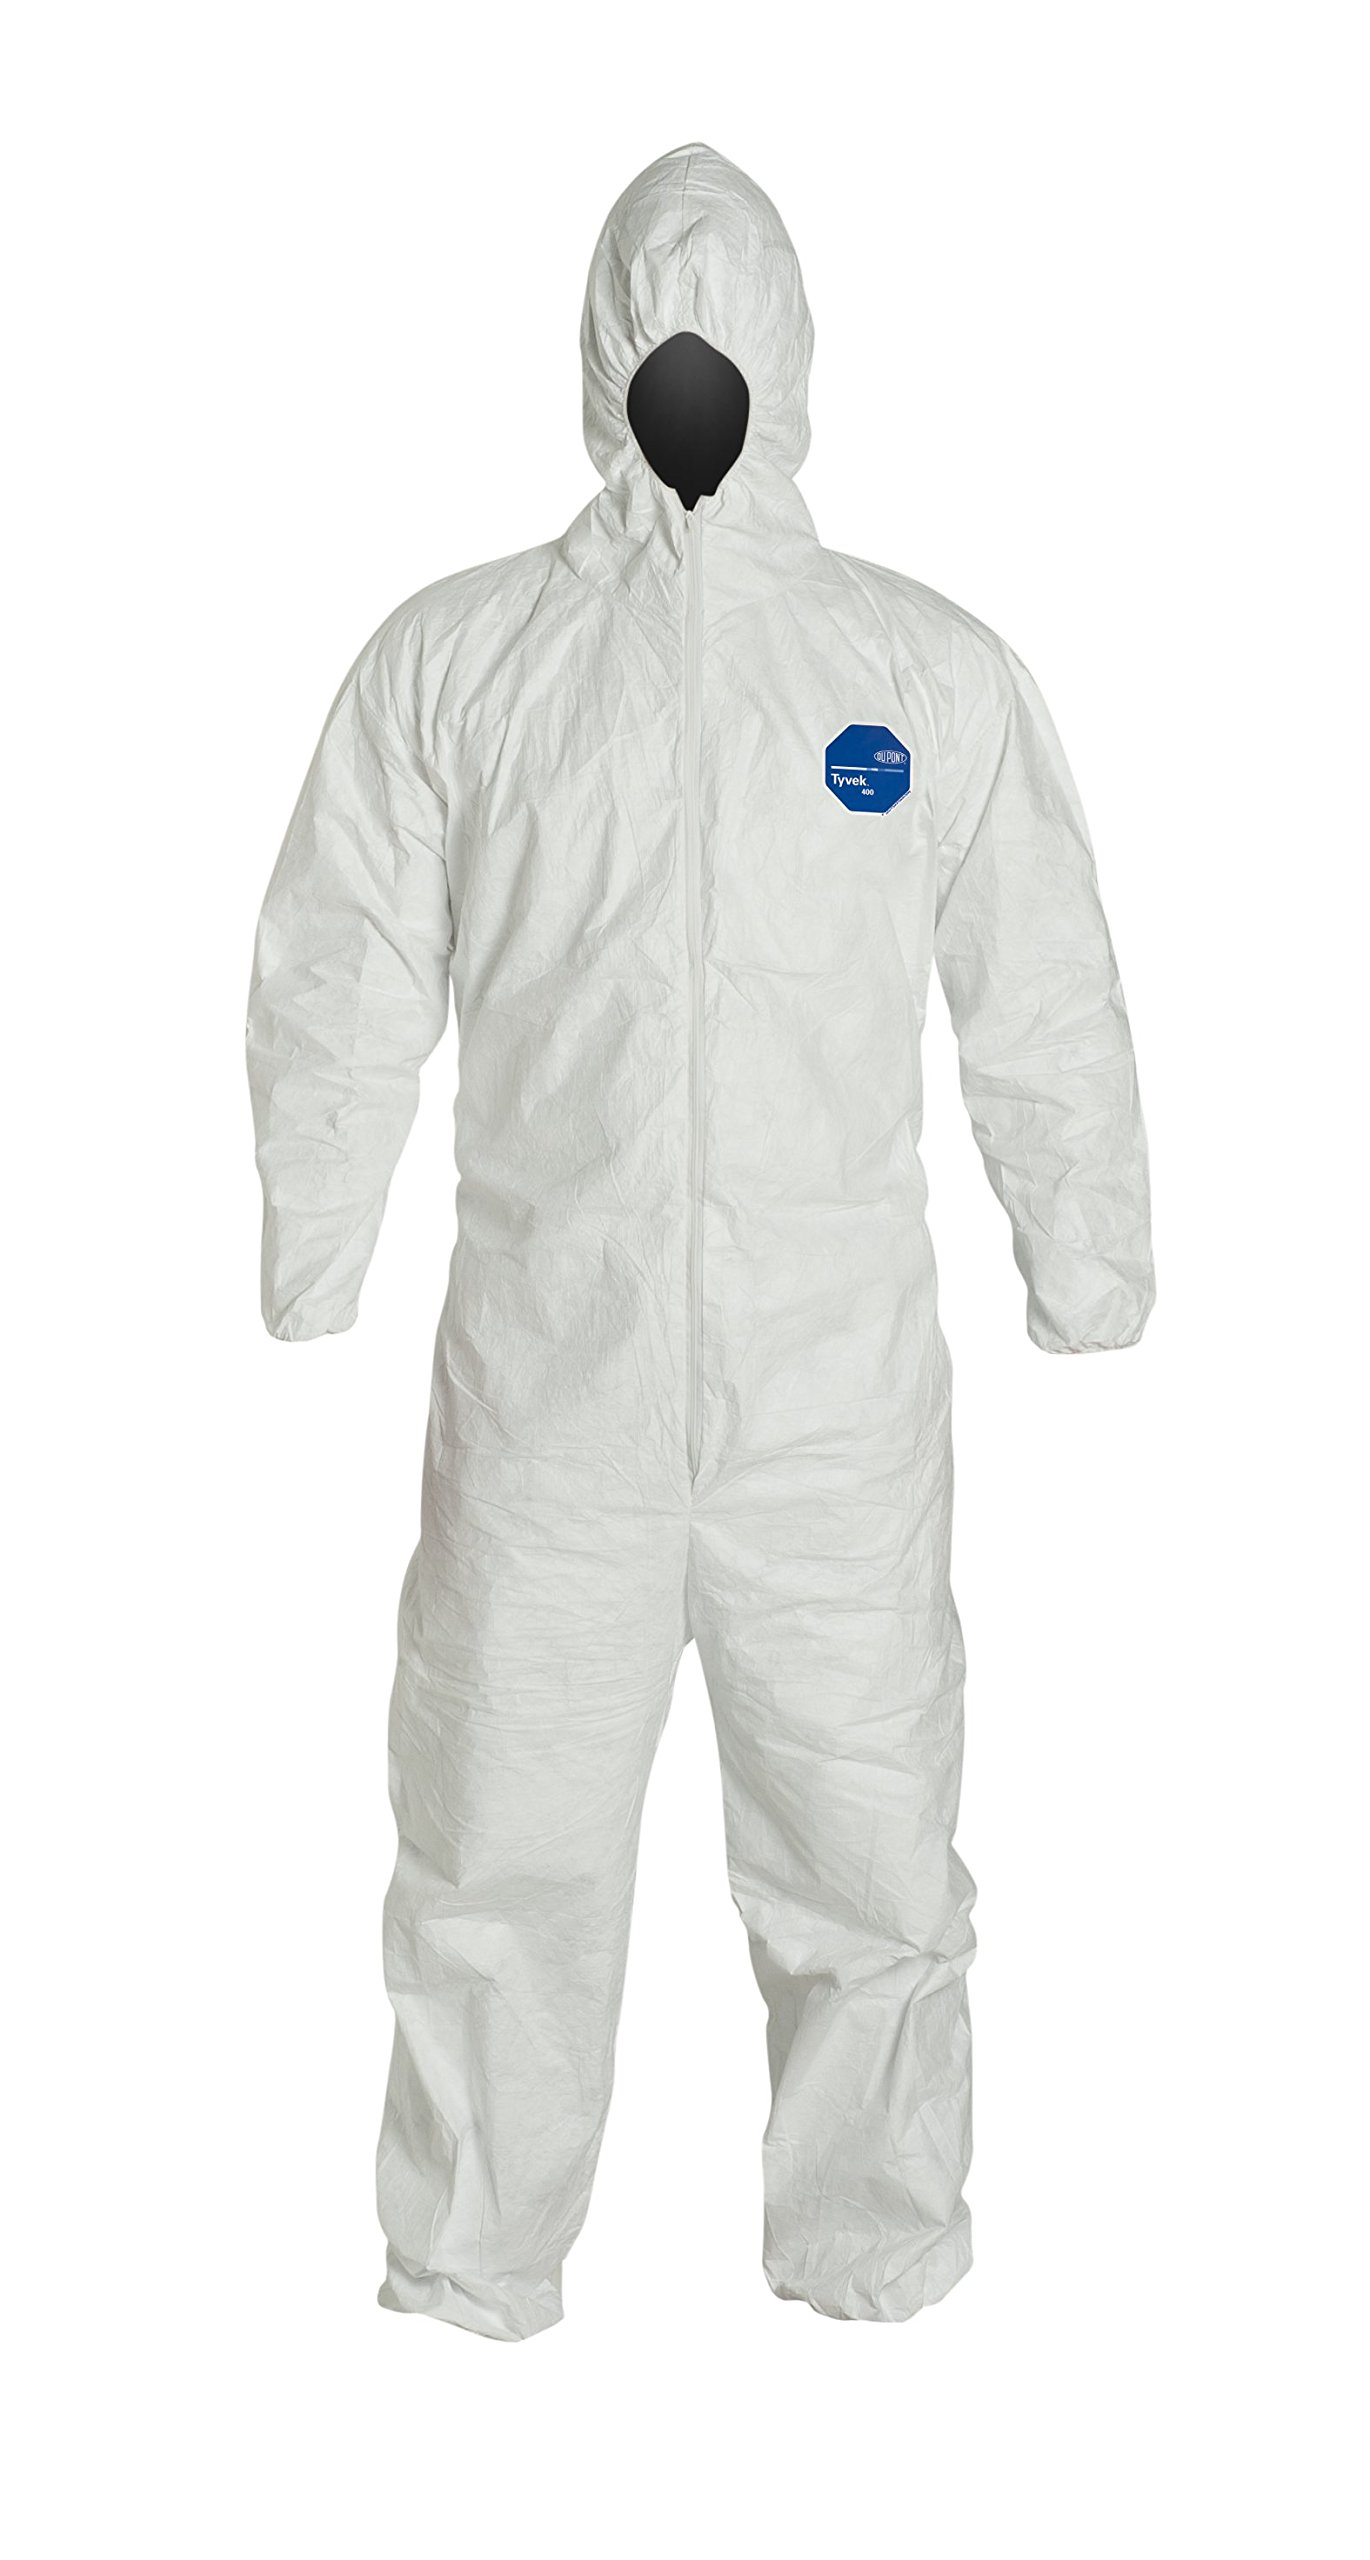 DuPont Tyvek 400 TY127S Disposable Protective Coverall with Respirator-Fit Hood and Elastic Cuff, White, 2X-Large (Pack of 6) by DuPont